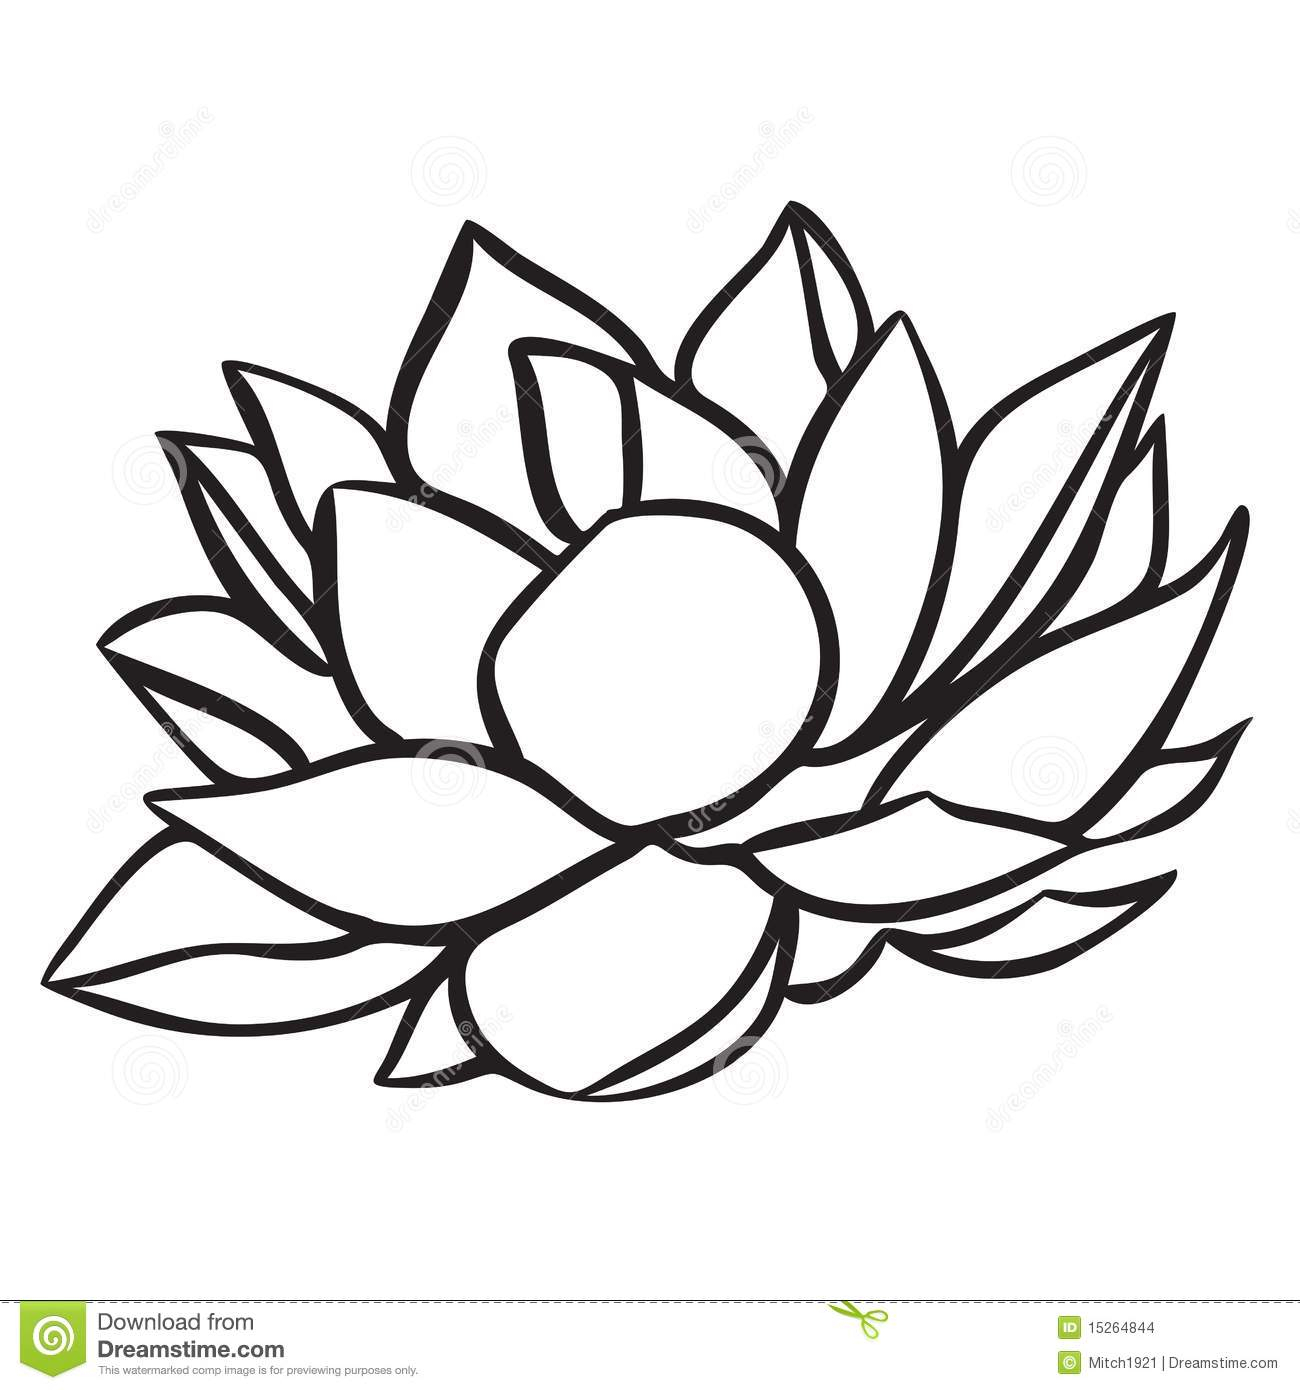 Lotus Drawing Images At Getdrawings Free For Personal Use